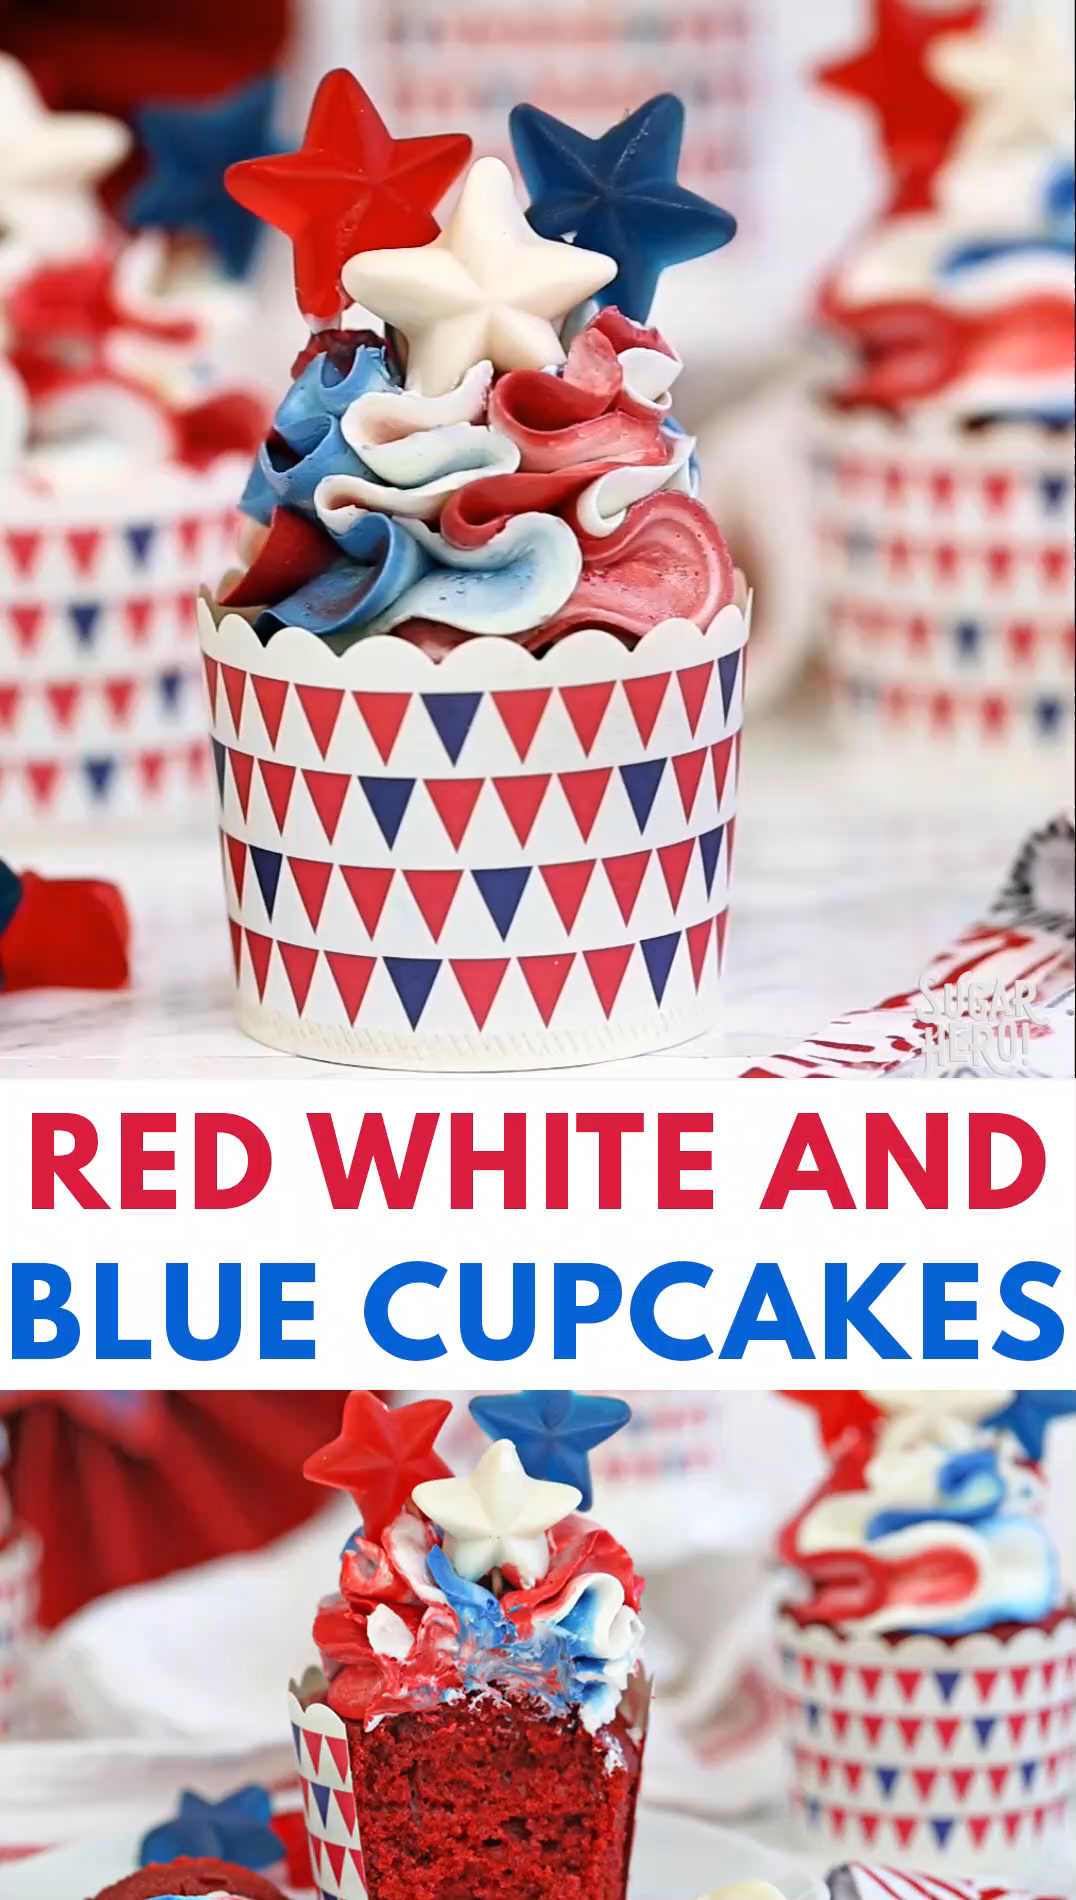 Red White and Blue Cupcakes Video